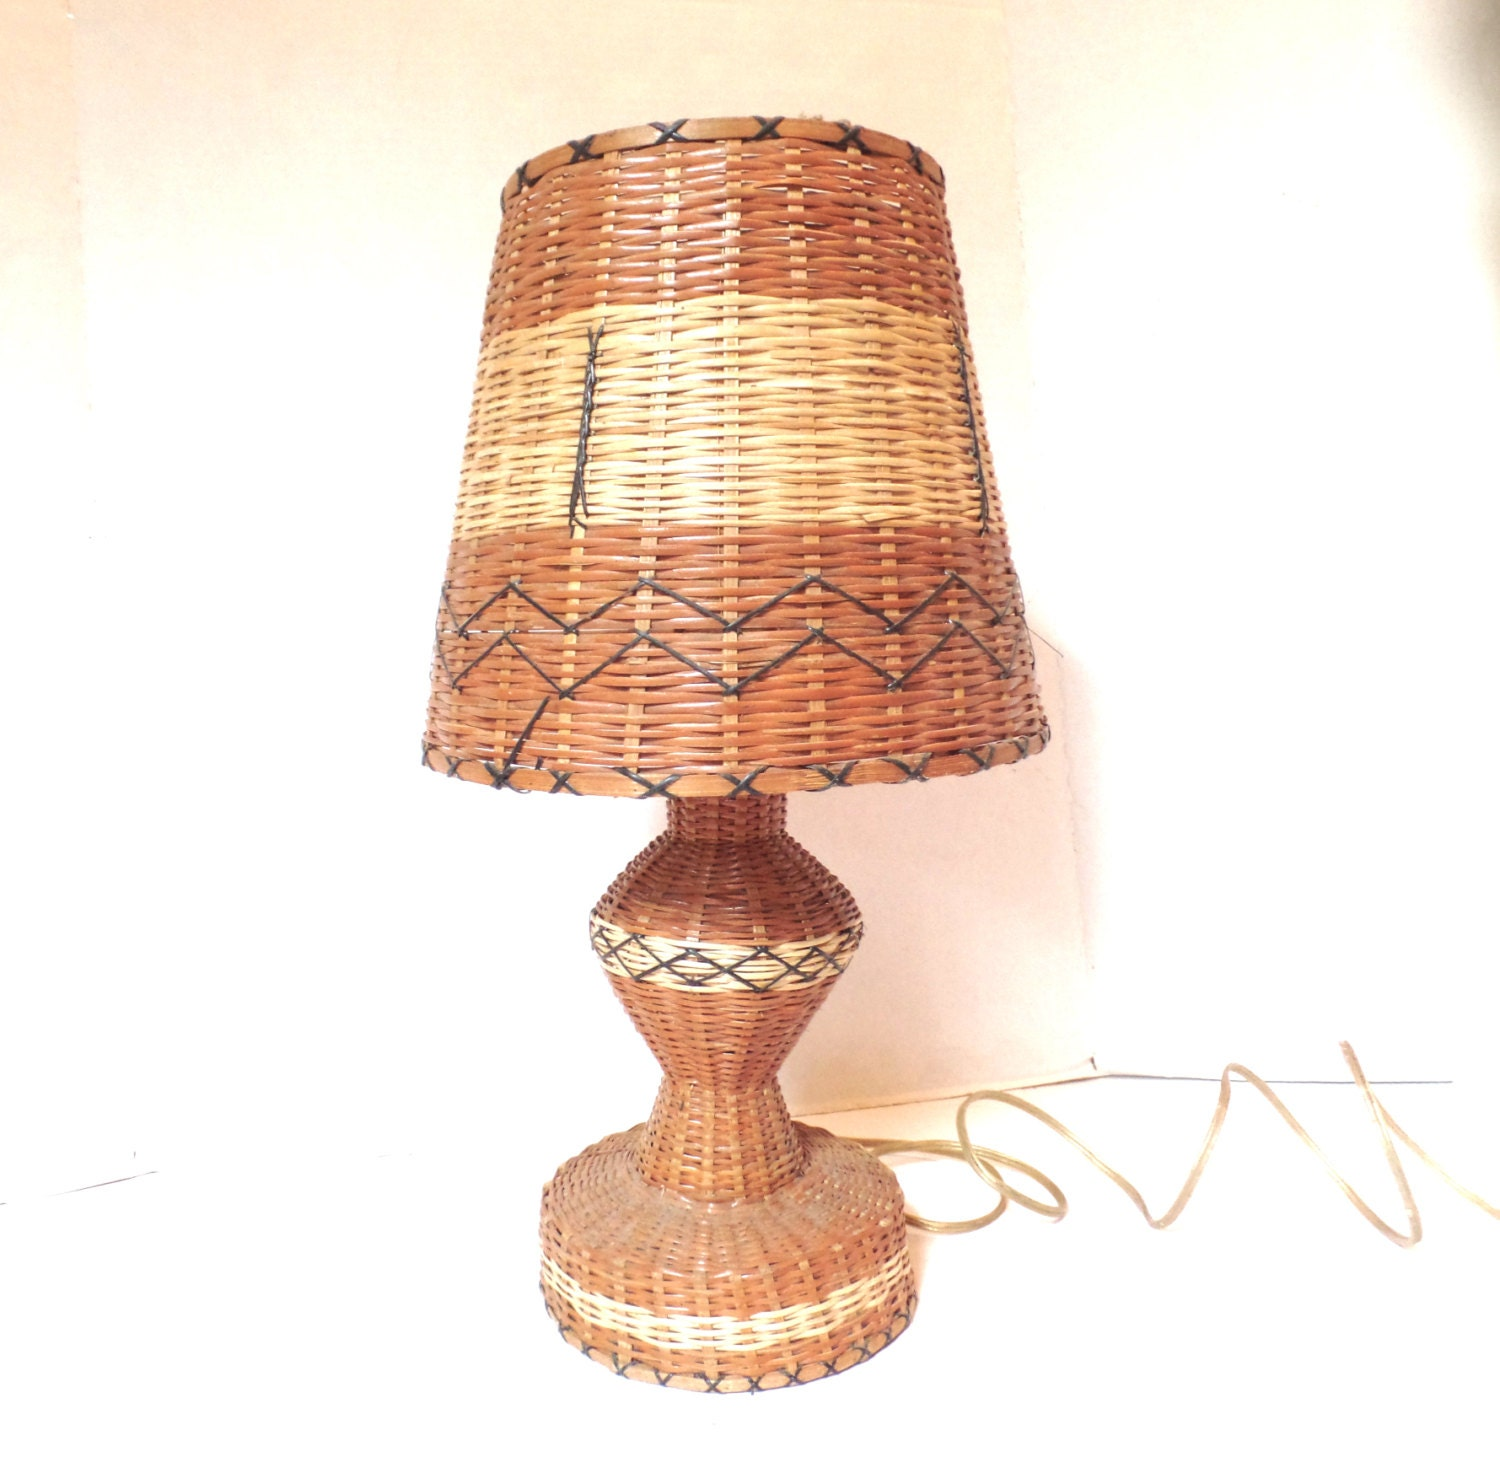 Vintage Wicker Table Lamp 70s Woven Rattan Lamp by ...